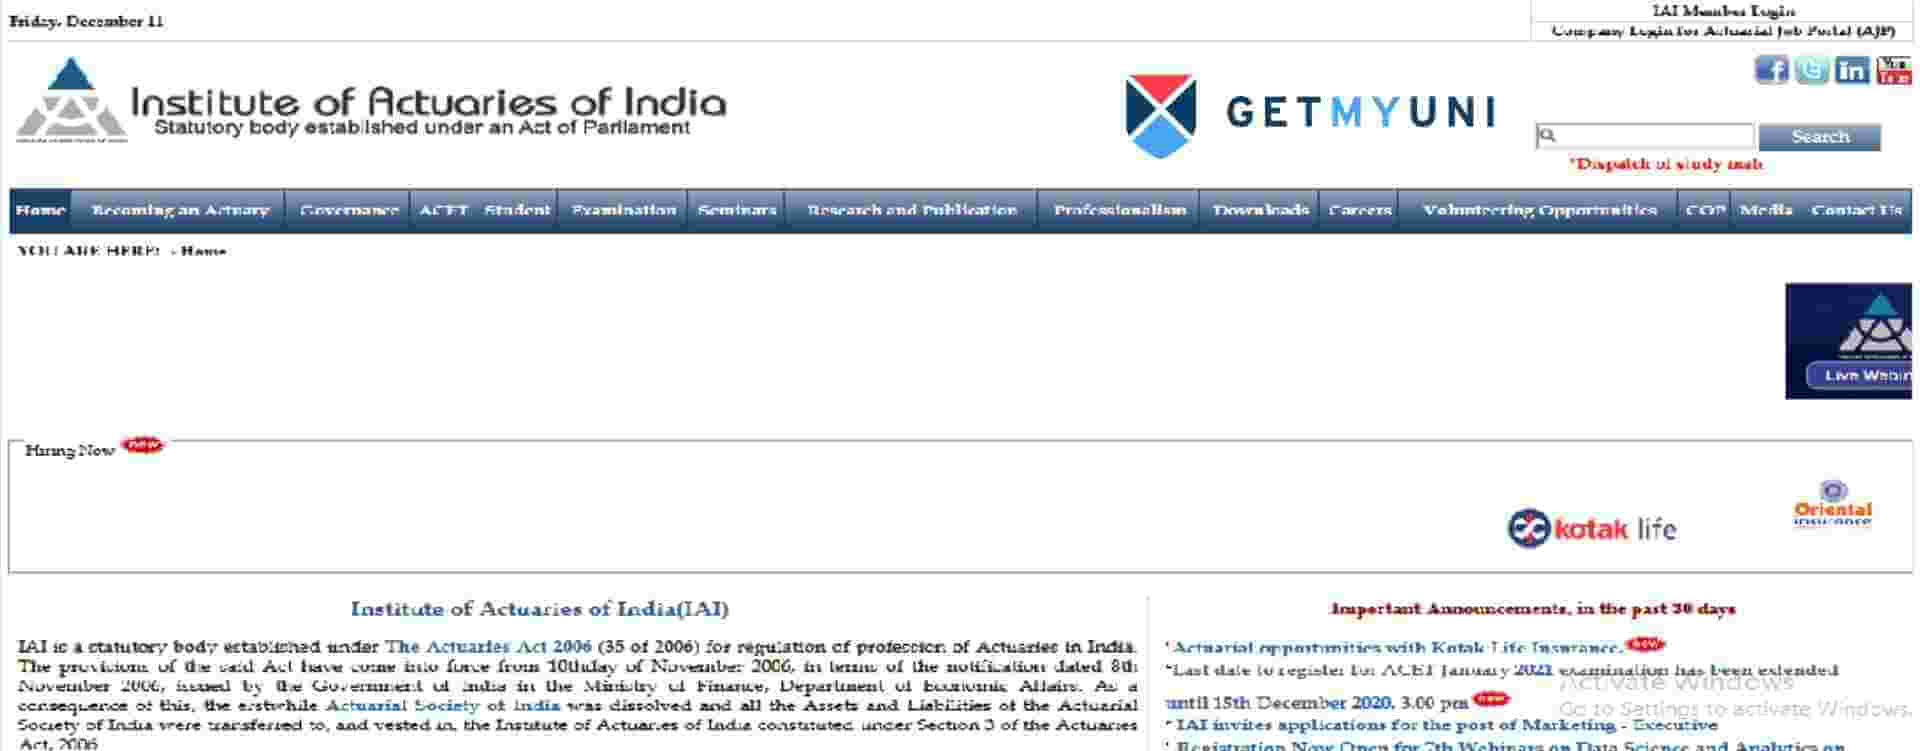 ACET Home Page